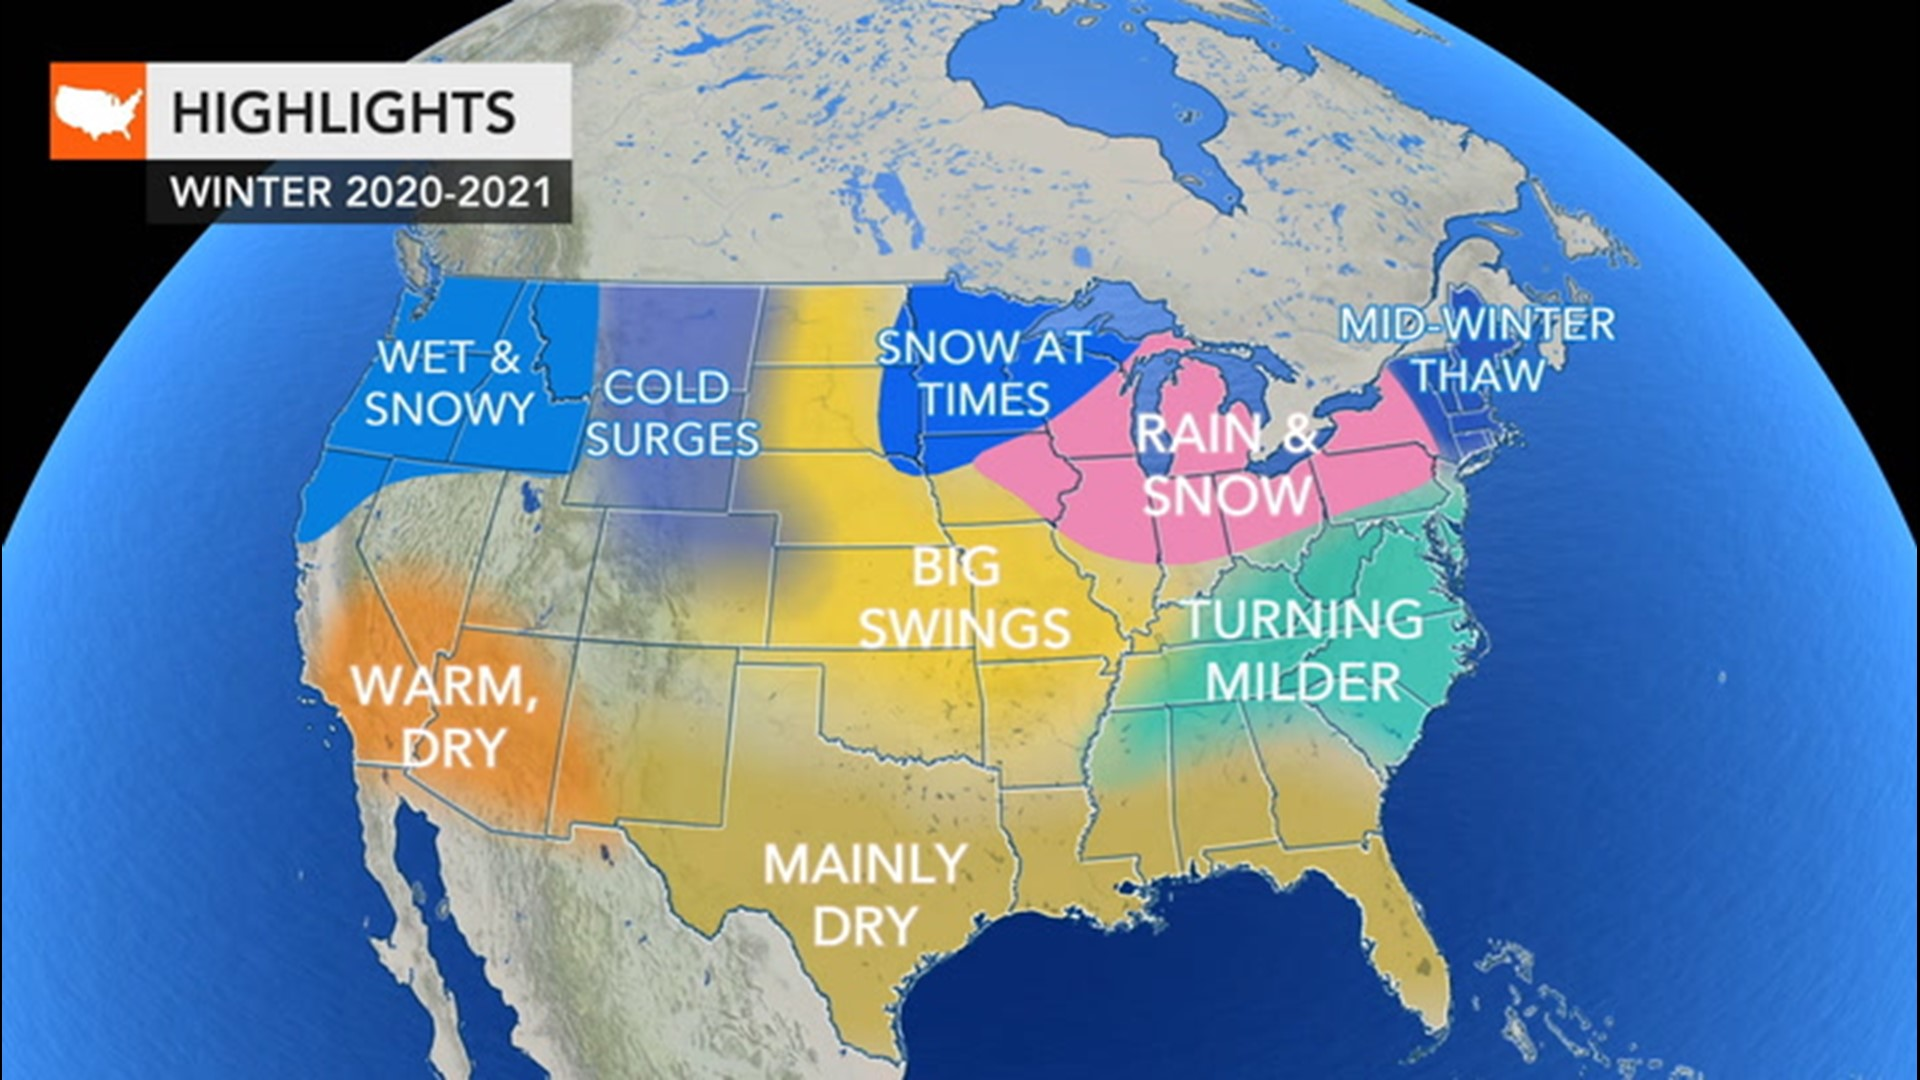 Winter is coming; here's the winter weather forecast for around